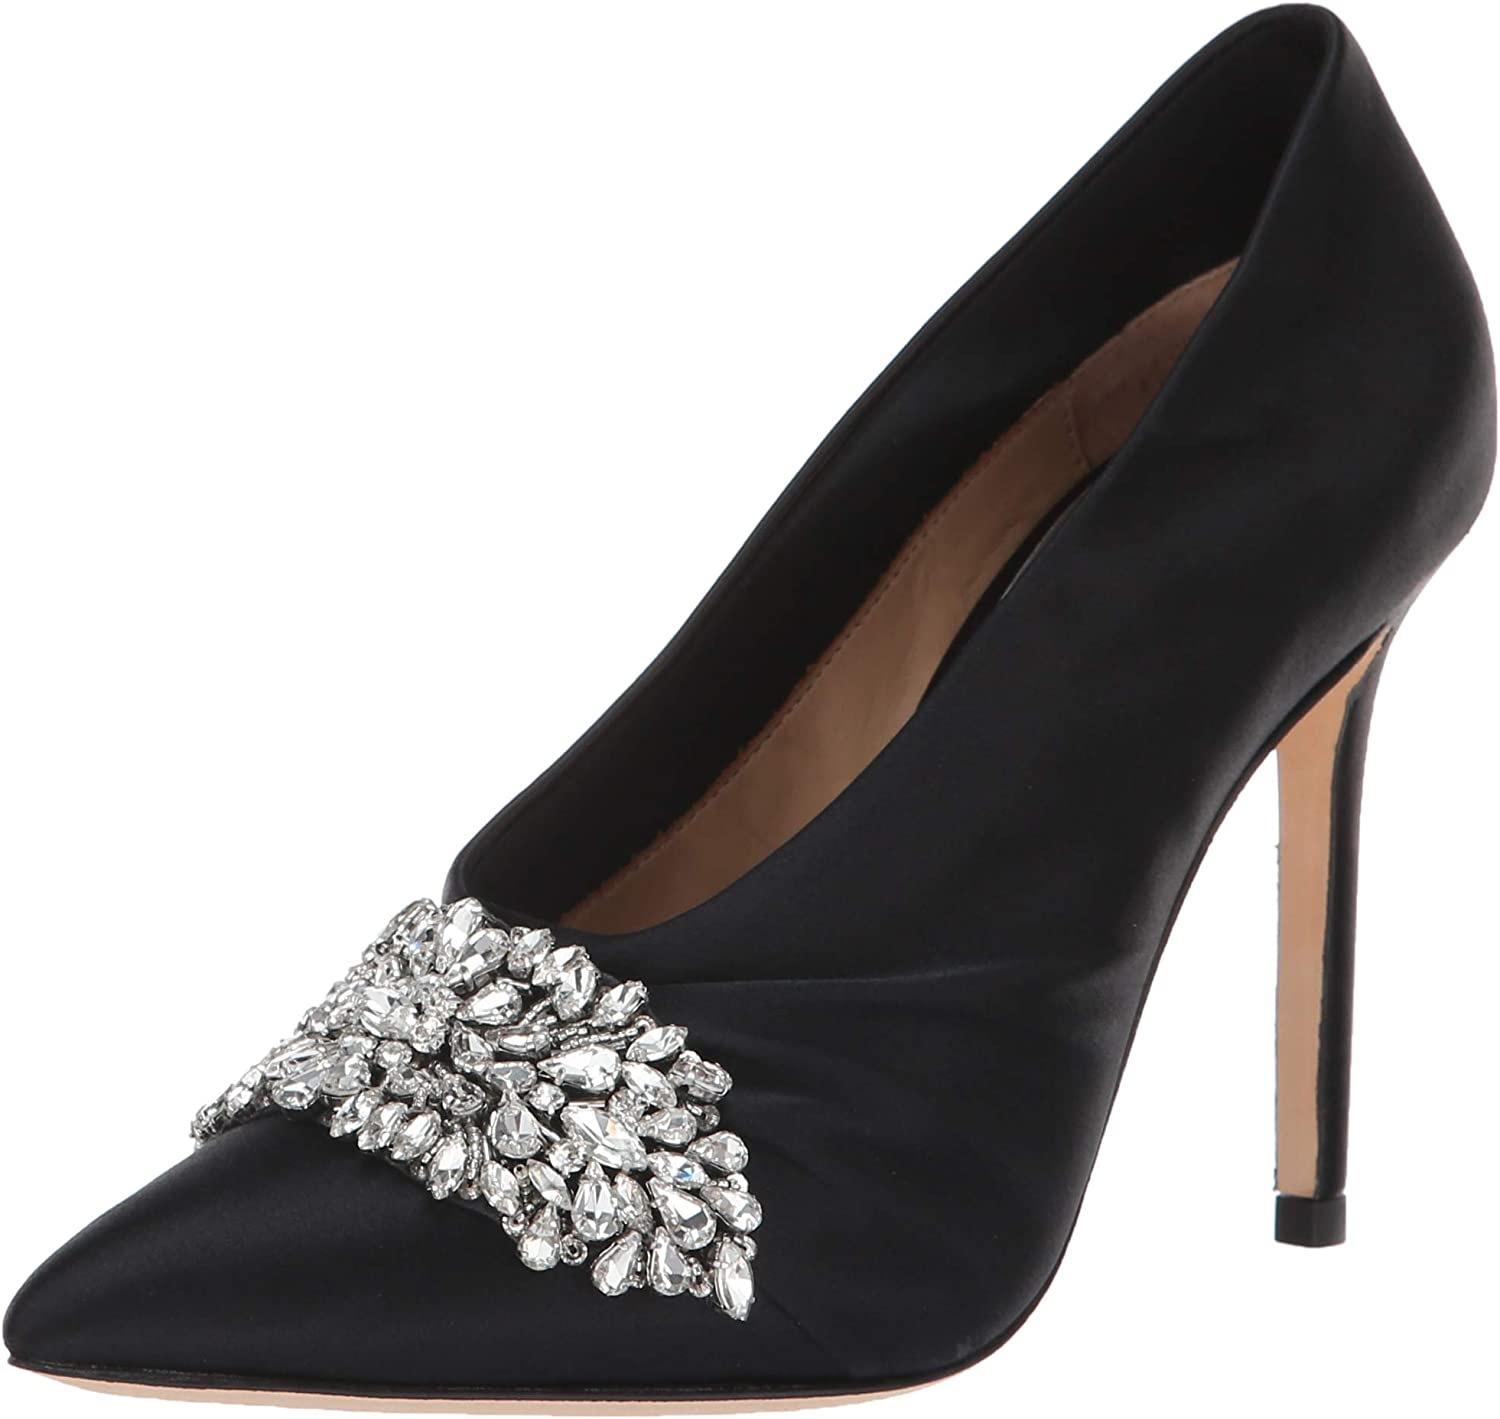 Badgley Mischka Womens Vanilla Pump